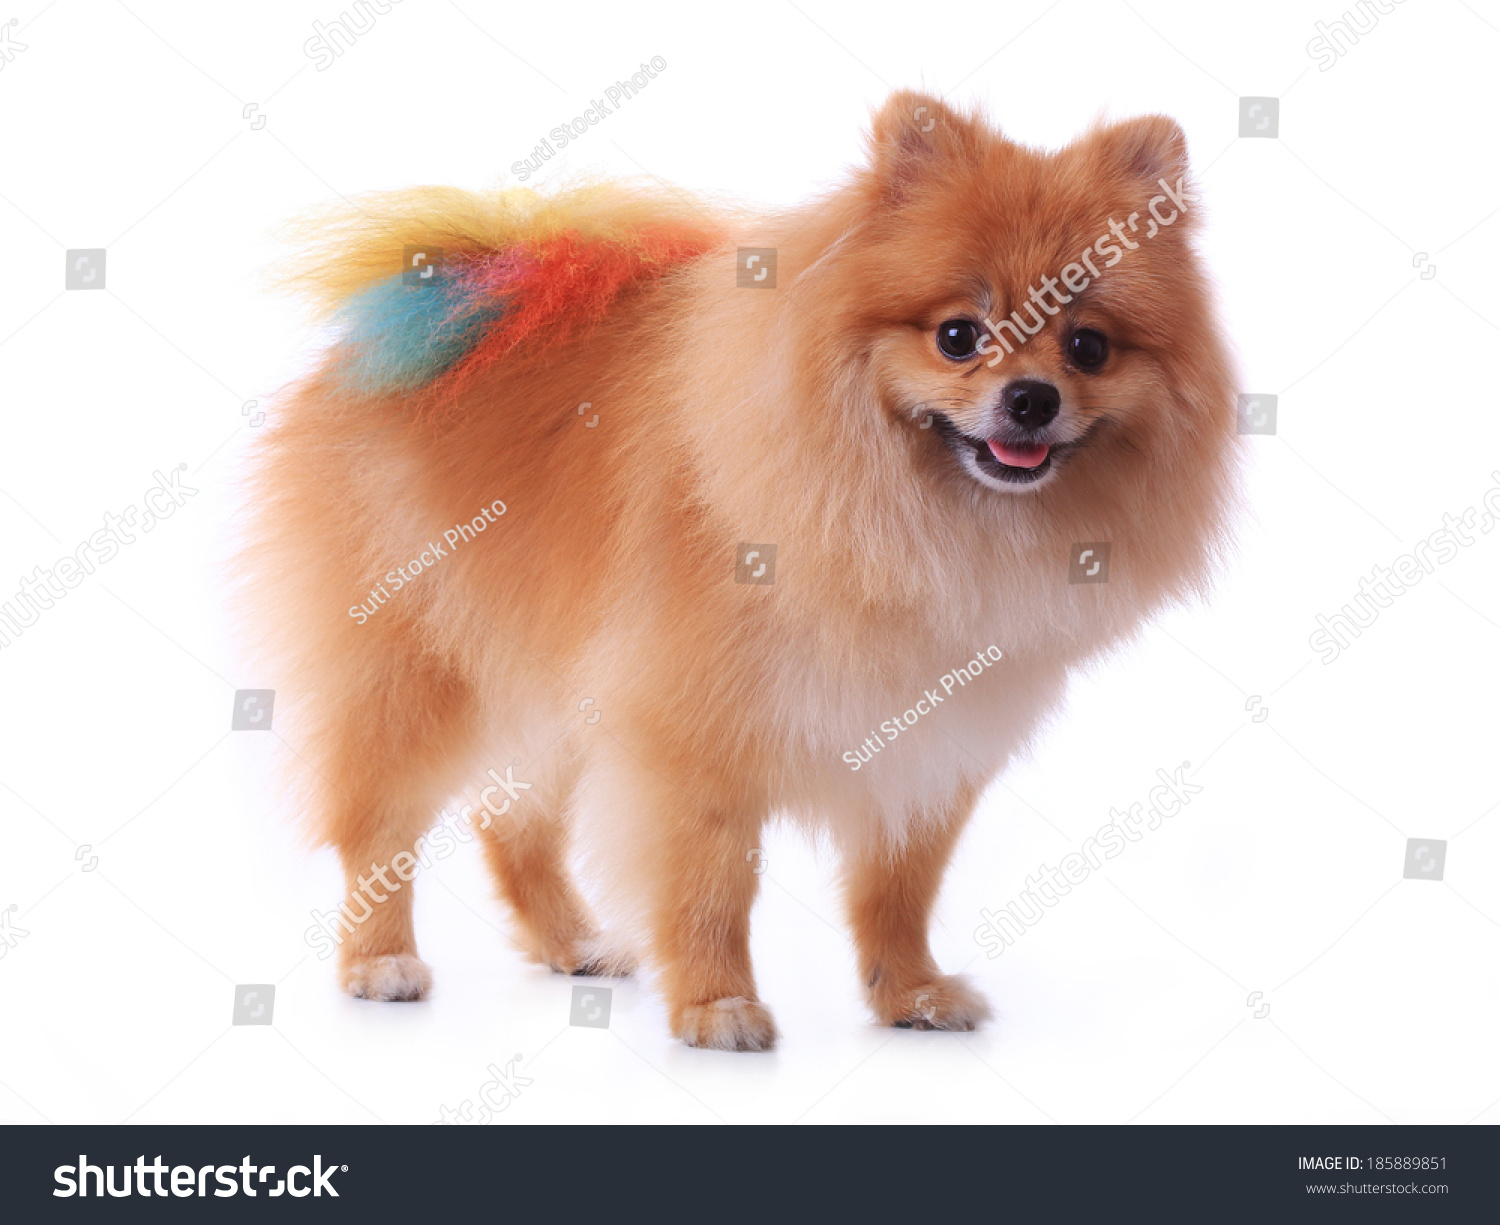 Brown Pomeranian Dog Grooming Colorful Tail Isolated On White